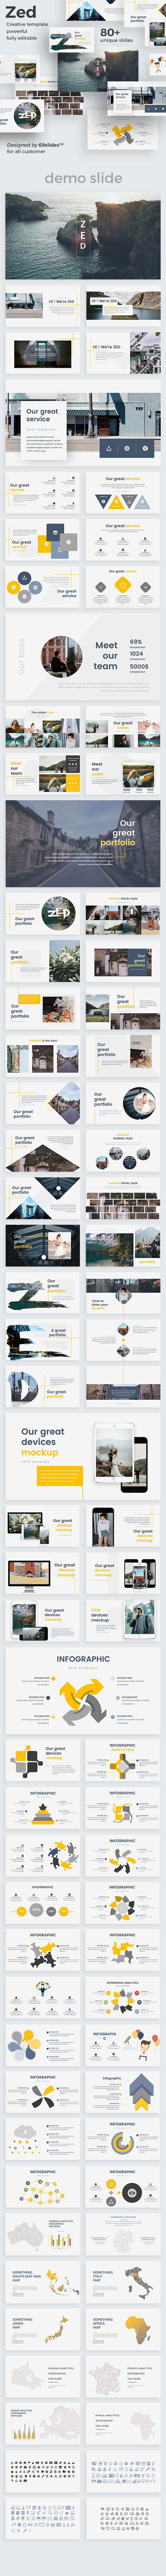 Zed Creative Powerpoint Template - Creative PowerPoint Templates